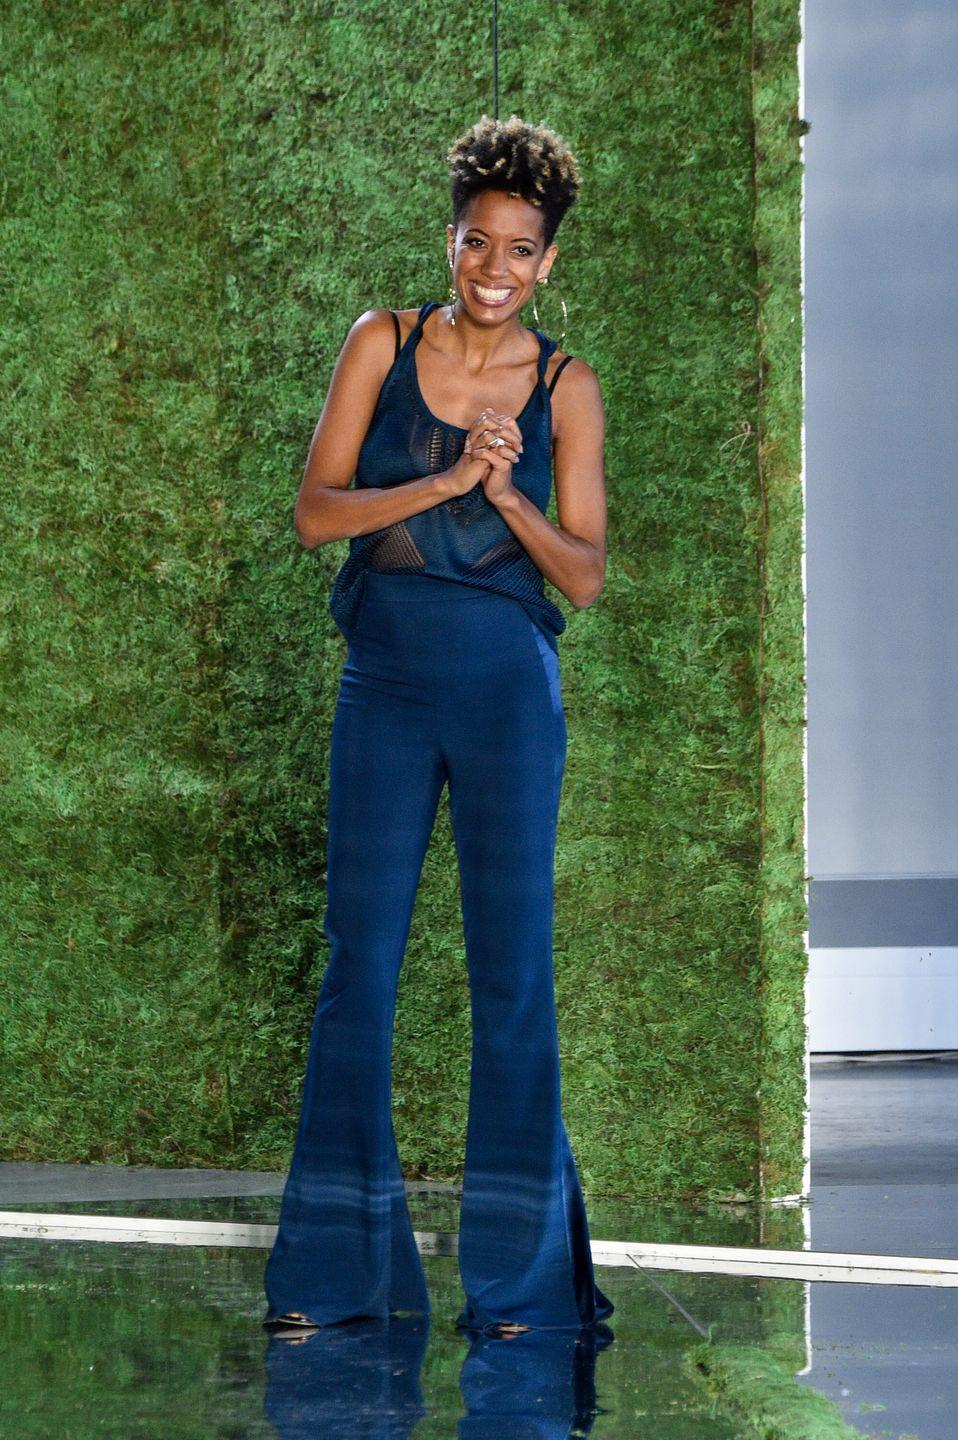 """<p><strong>Brand</strong>: Cushnie</p><p>Designer Carly Cushnie's sleek styles have been worn by the likes of Jennifer Lopez, Ashley Graham, and Lupita Nyong'o, btw. Her streamlined silhouettes and luxe fabrics combined make real """"wow"""" pieces in your closet. </p>"""